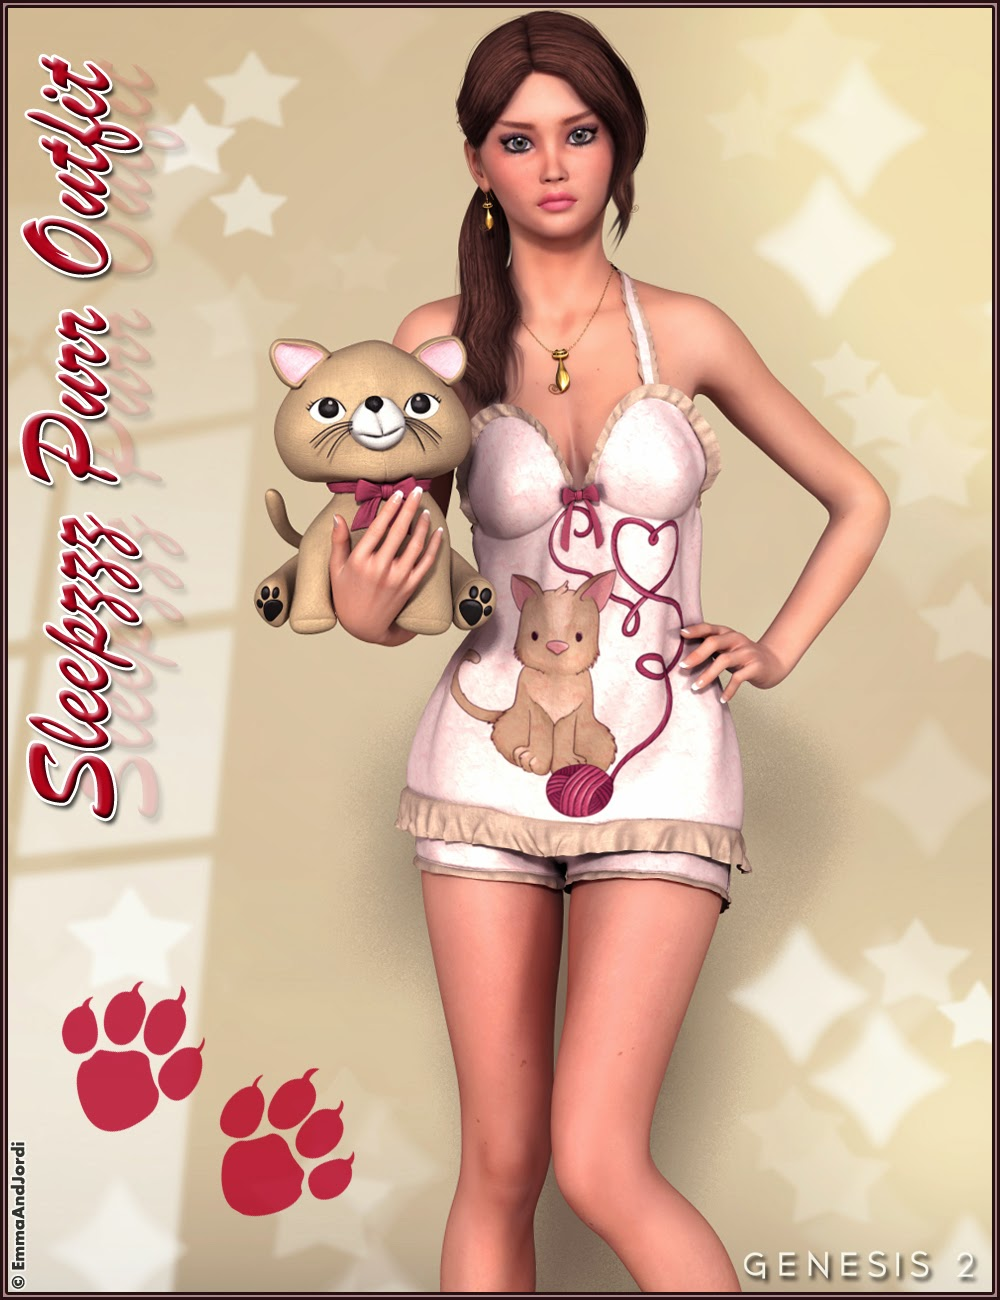 http://www.daz3d.com/sleepzzz-purr-outfit-and-accessories